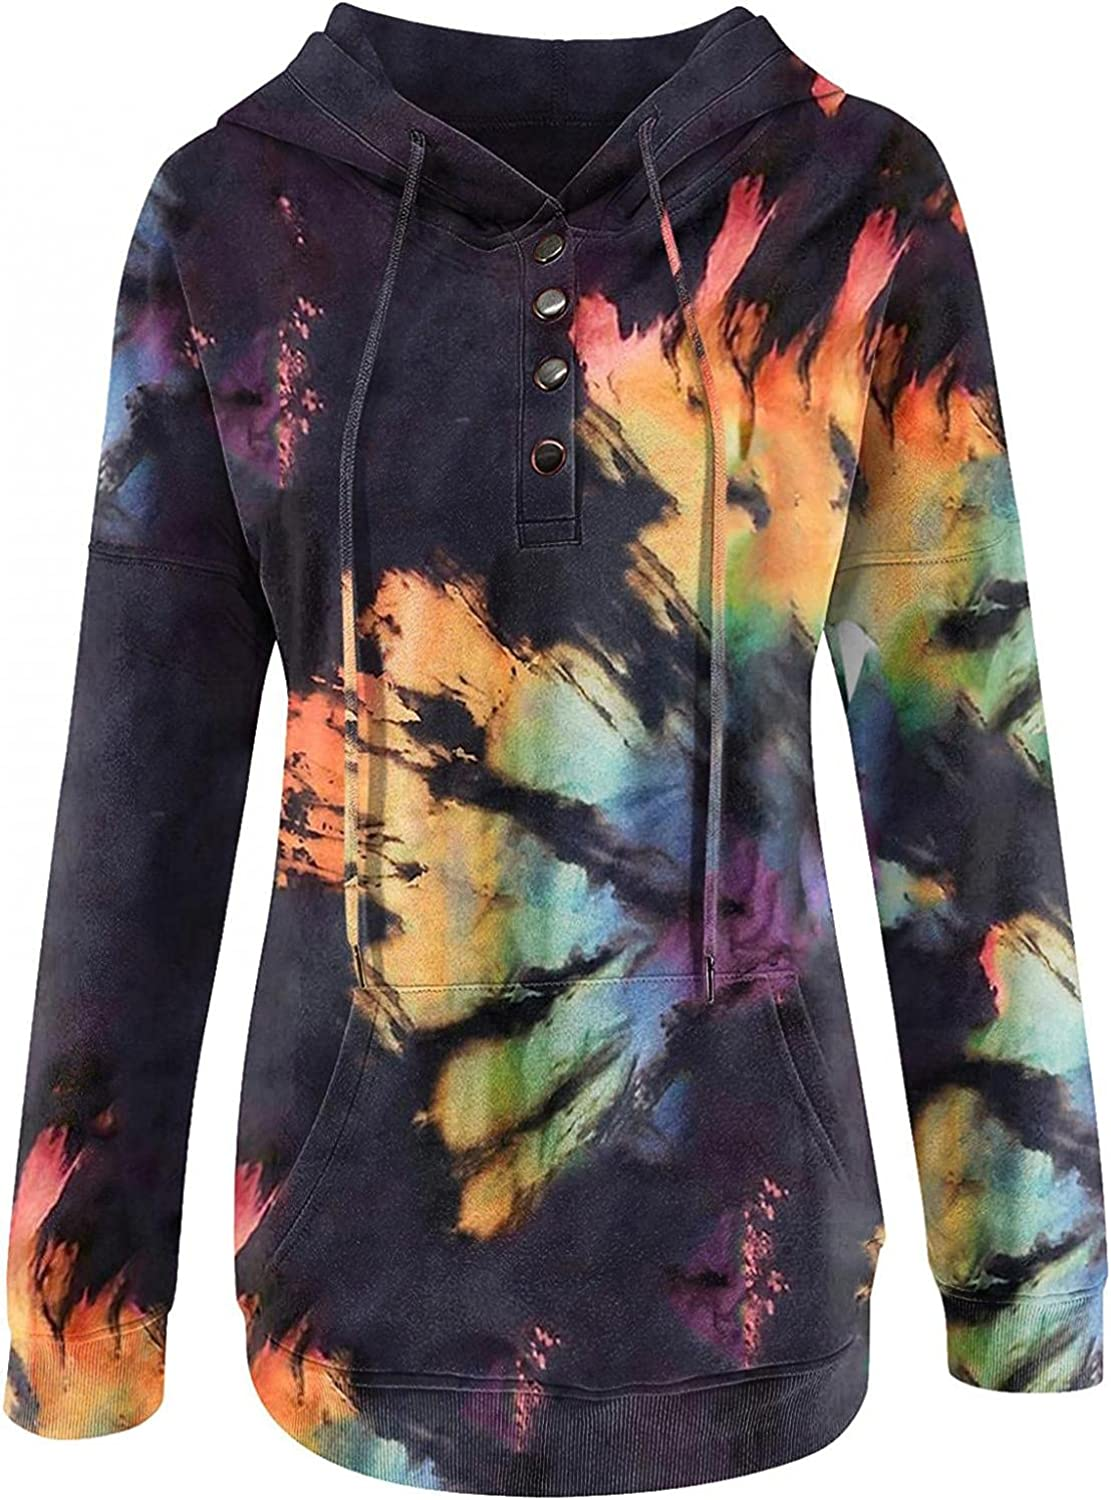 POLLYANNA KEONG Hoodies for Women Fashion Tie Dye Long Sleeve Sweatshirts Letter Graphic Loose Tops Blouses